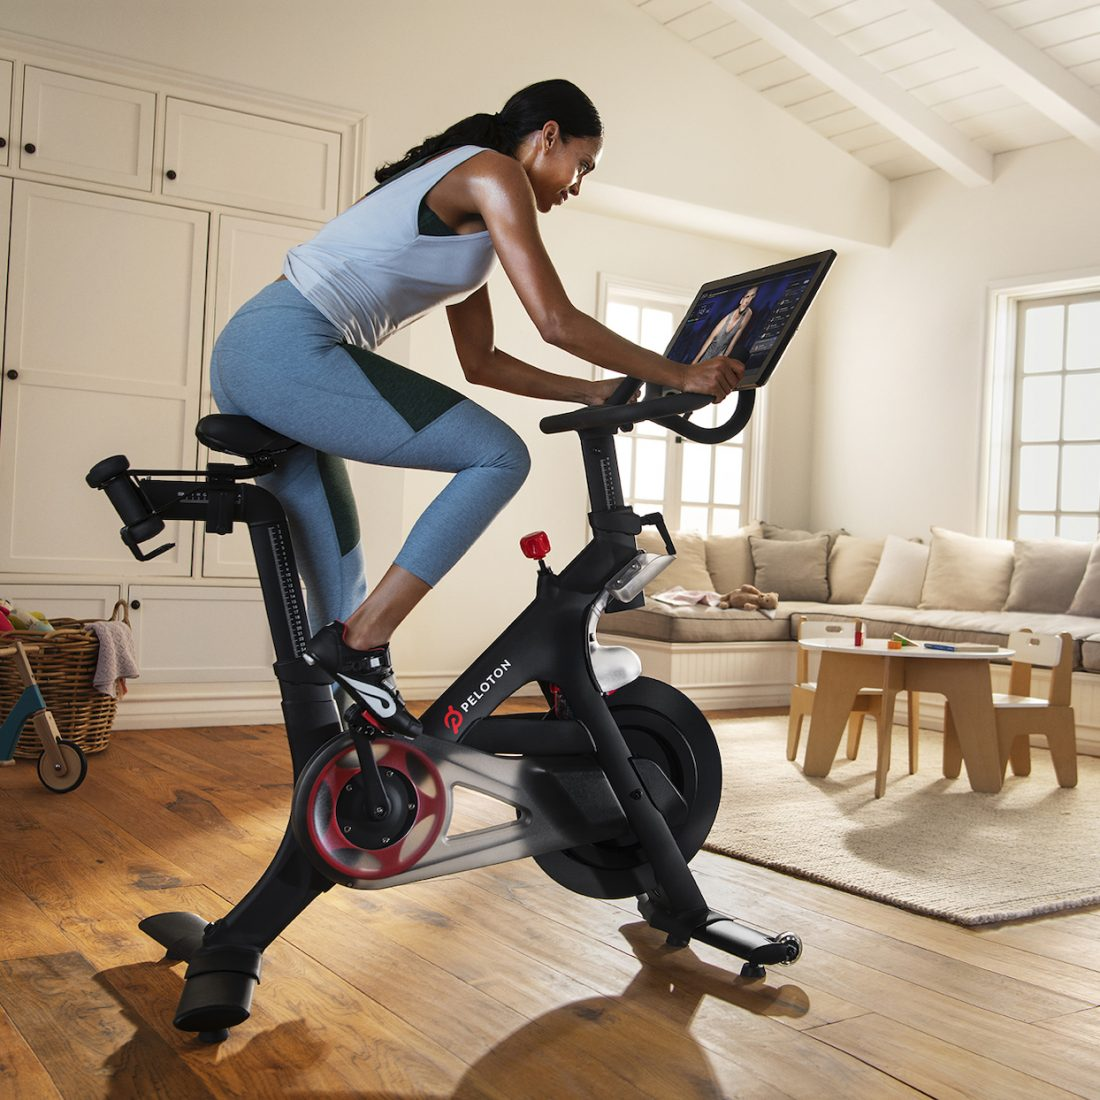 Peloton cancels live fitness classes after employee tests positive for COVID-19